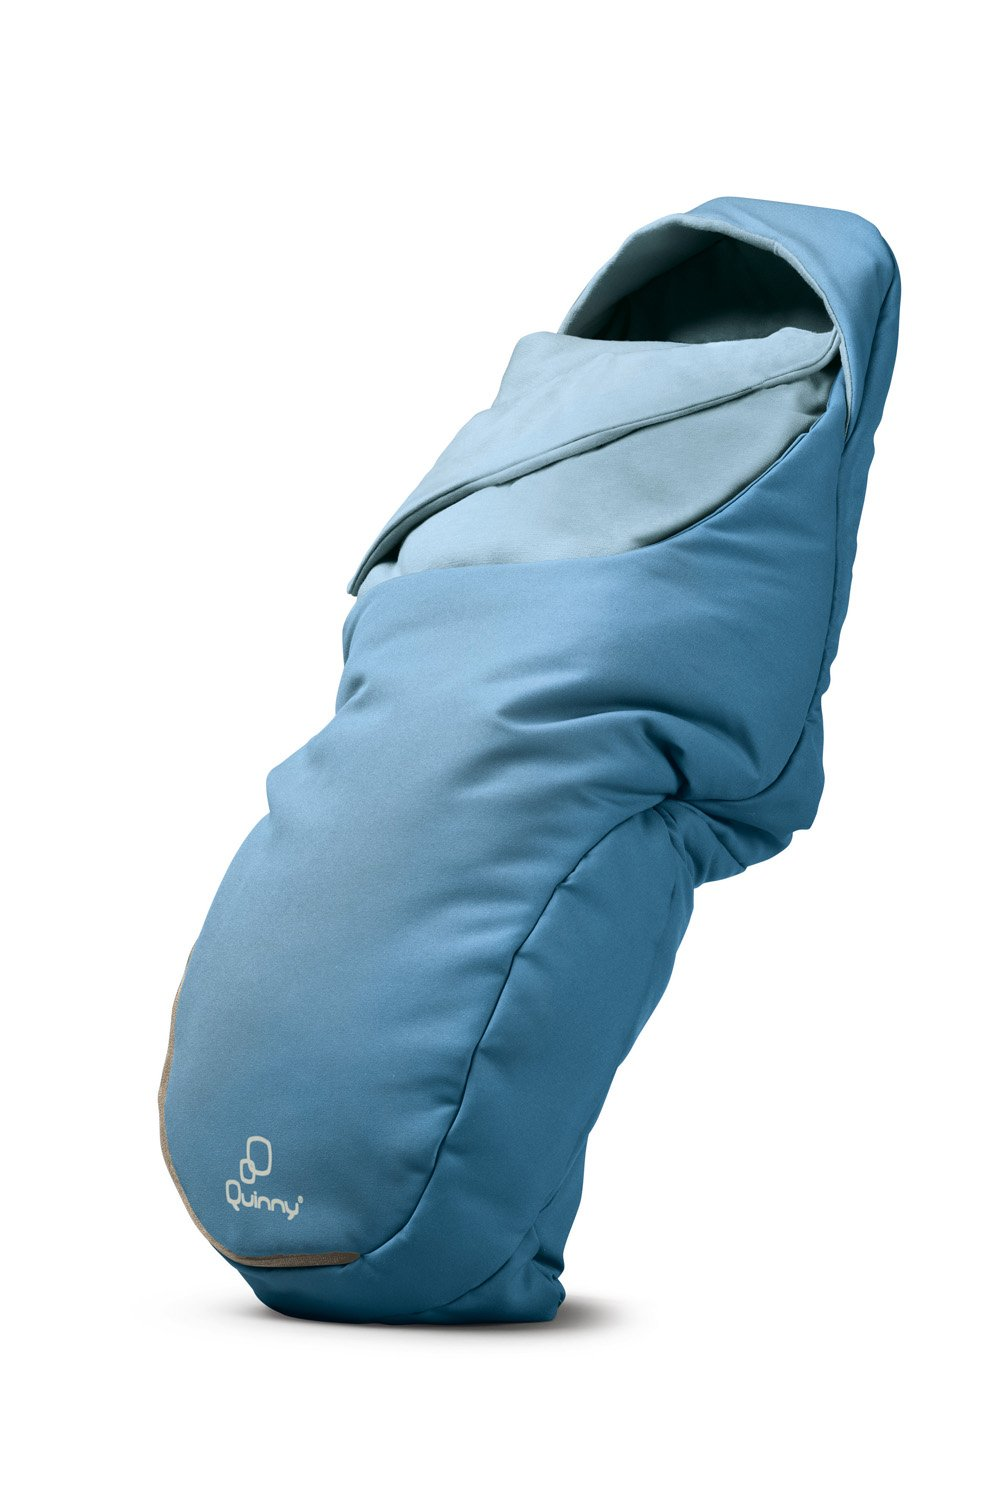 Quinny General Footmuff,Blue base,One Size